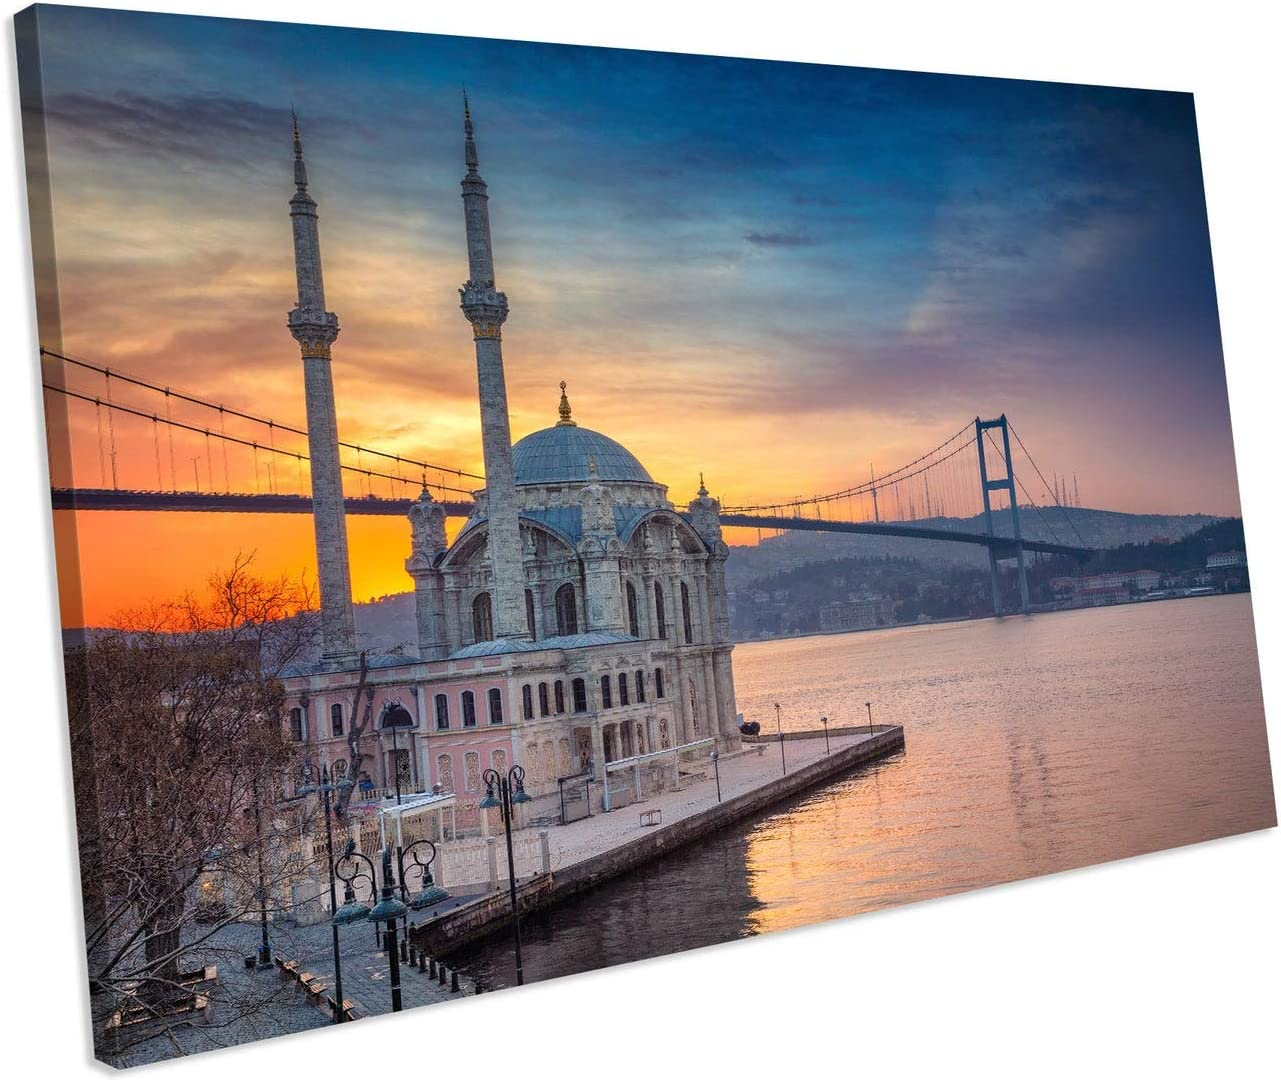 Amazon Com Daoyiqi Unframe Canvas Printing Wall Art Istanbul Bostphorus Bridge City Sunset Framed Picture Canvas Wall Art Print Wall Decoration For Living Room Bed Room Posters Prints